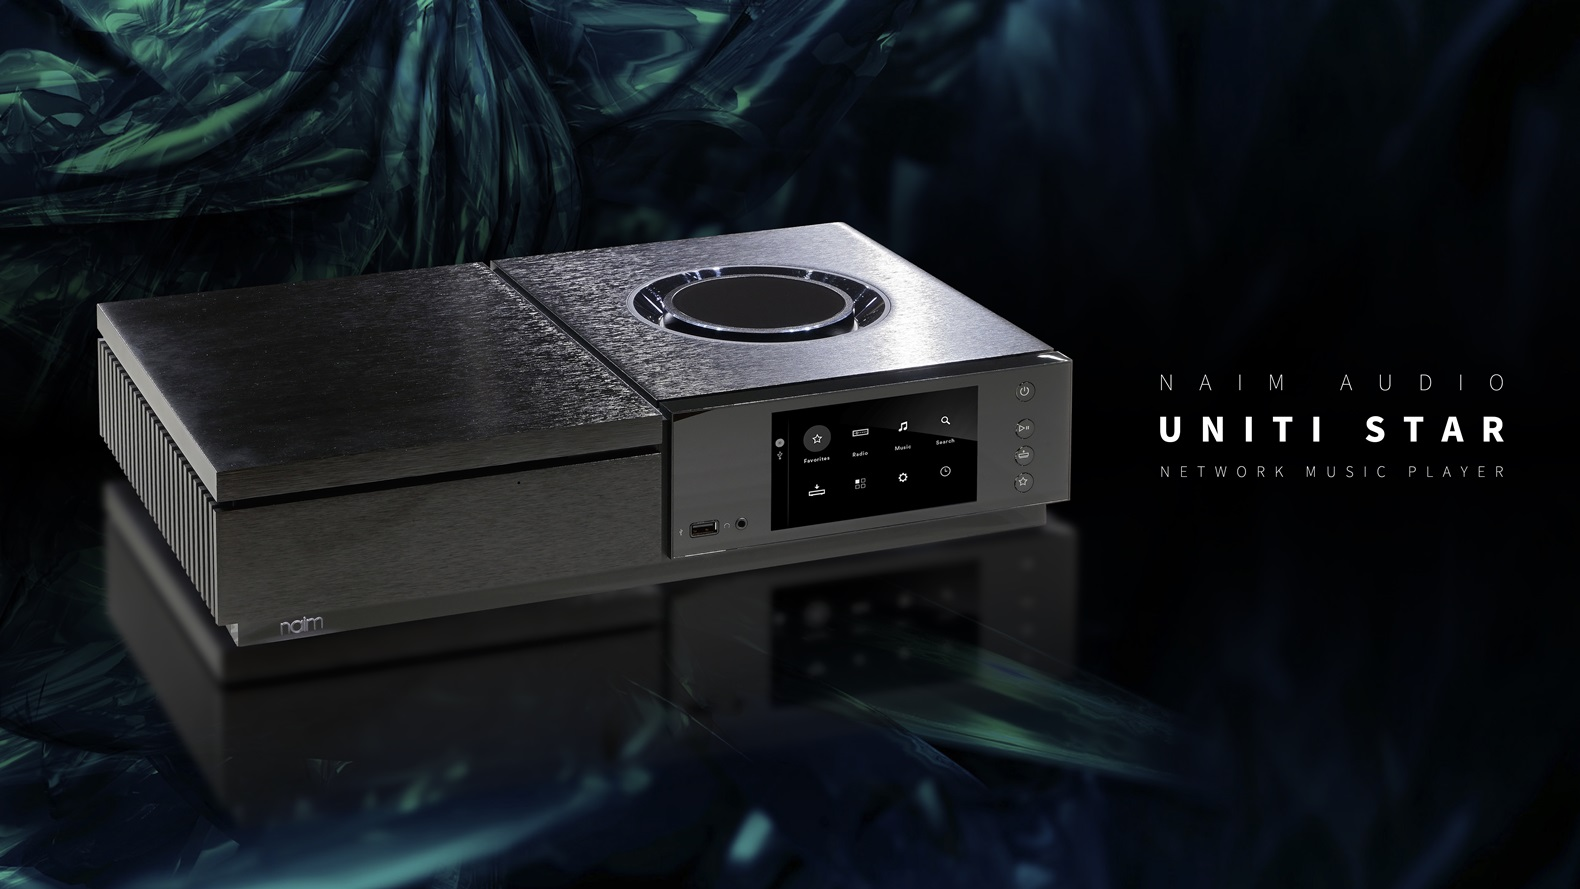 0605_naim_audio_uniti_star_06.jpg